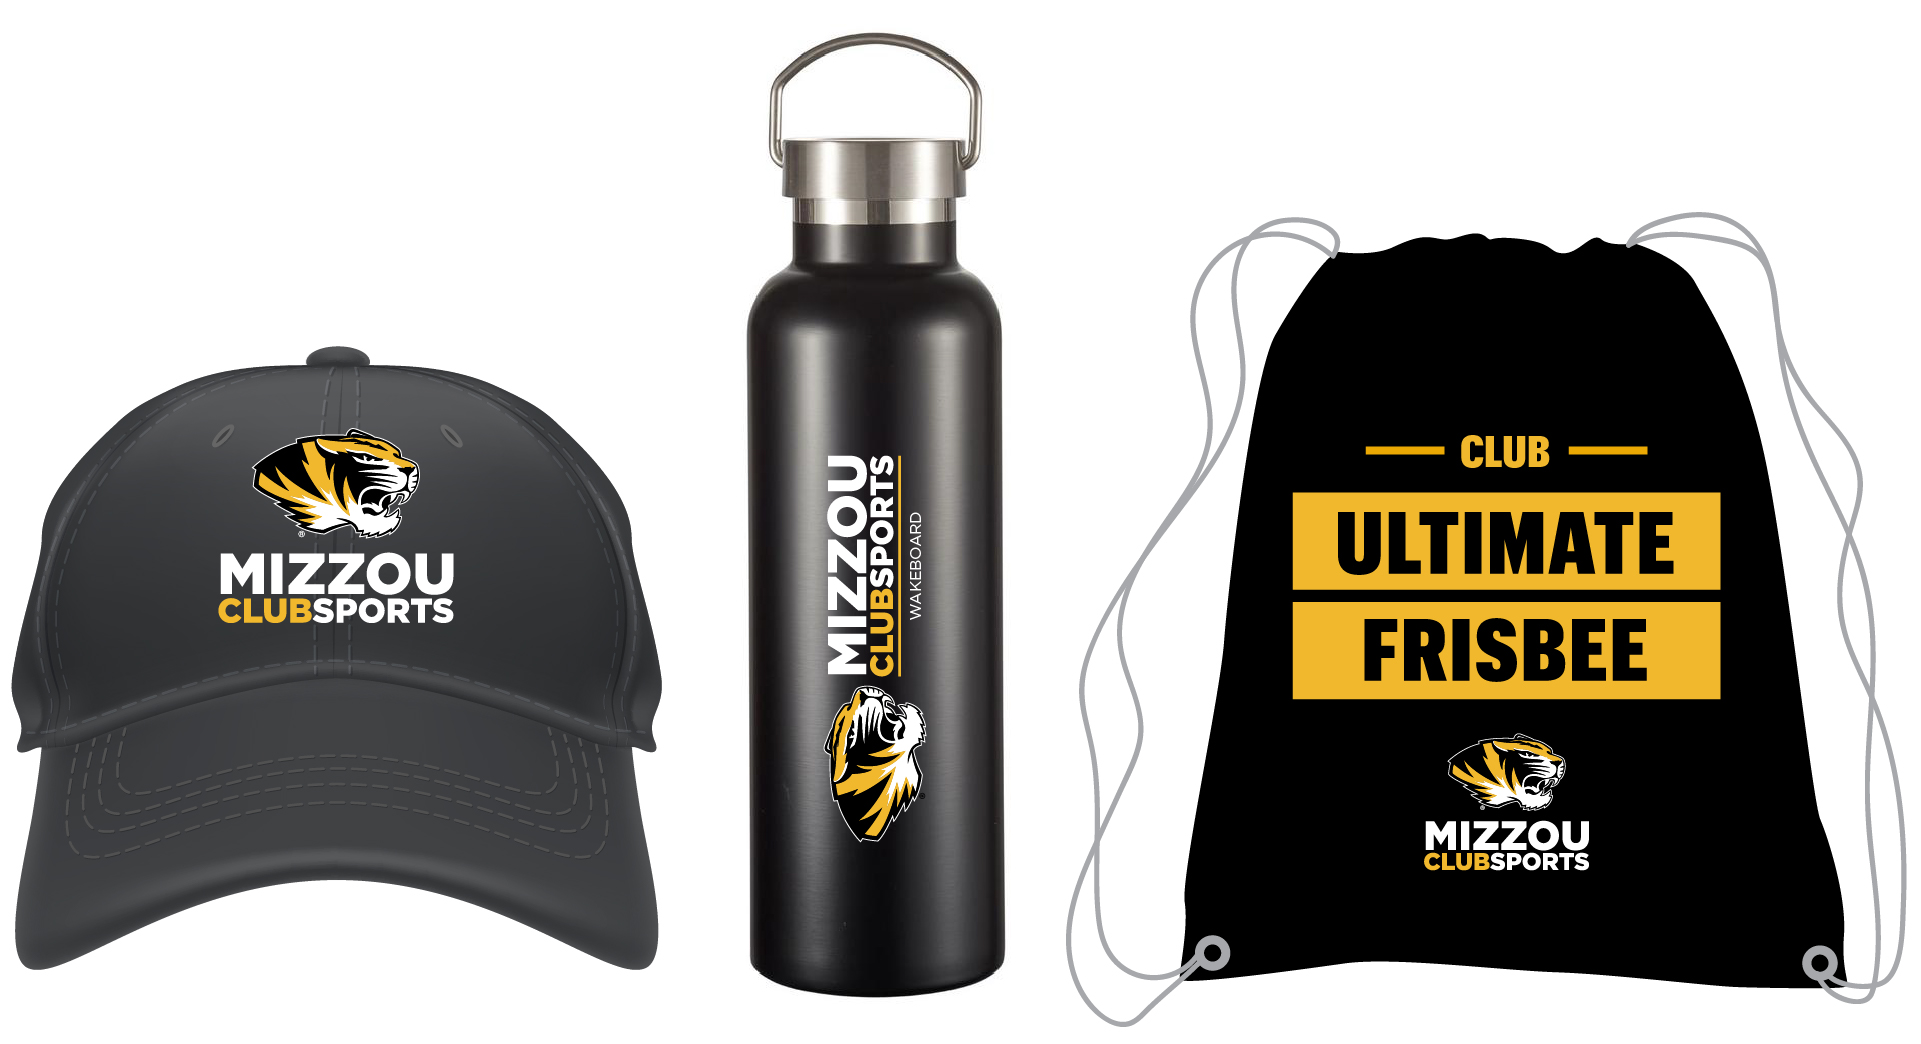 Examples of Mizzou Club Sports products such as hats, water bottles and bags that meet university guidelines.